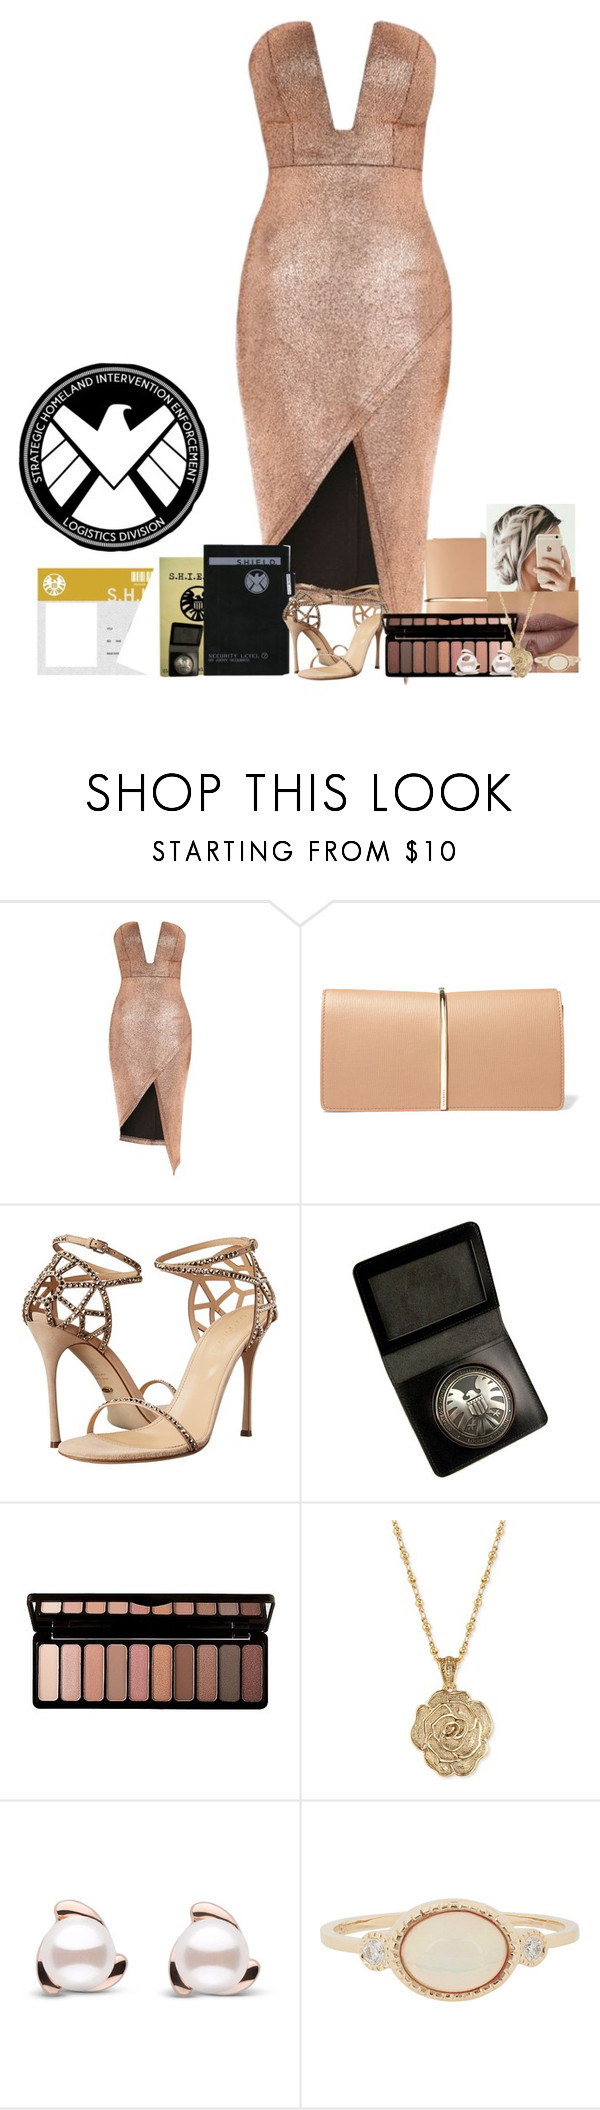 """""""Julie Fishers undercover ( shield agent )"""" by karabear3256 ❤ liked on Polyvore featuring Topshop, Nina Ricci, Sergio Rossi, e.l.f., 2028 and Jennie Kwon"""